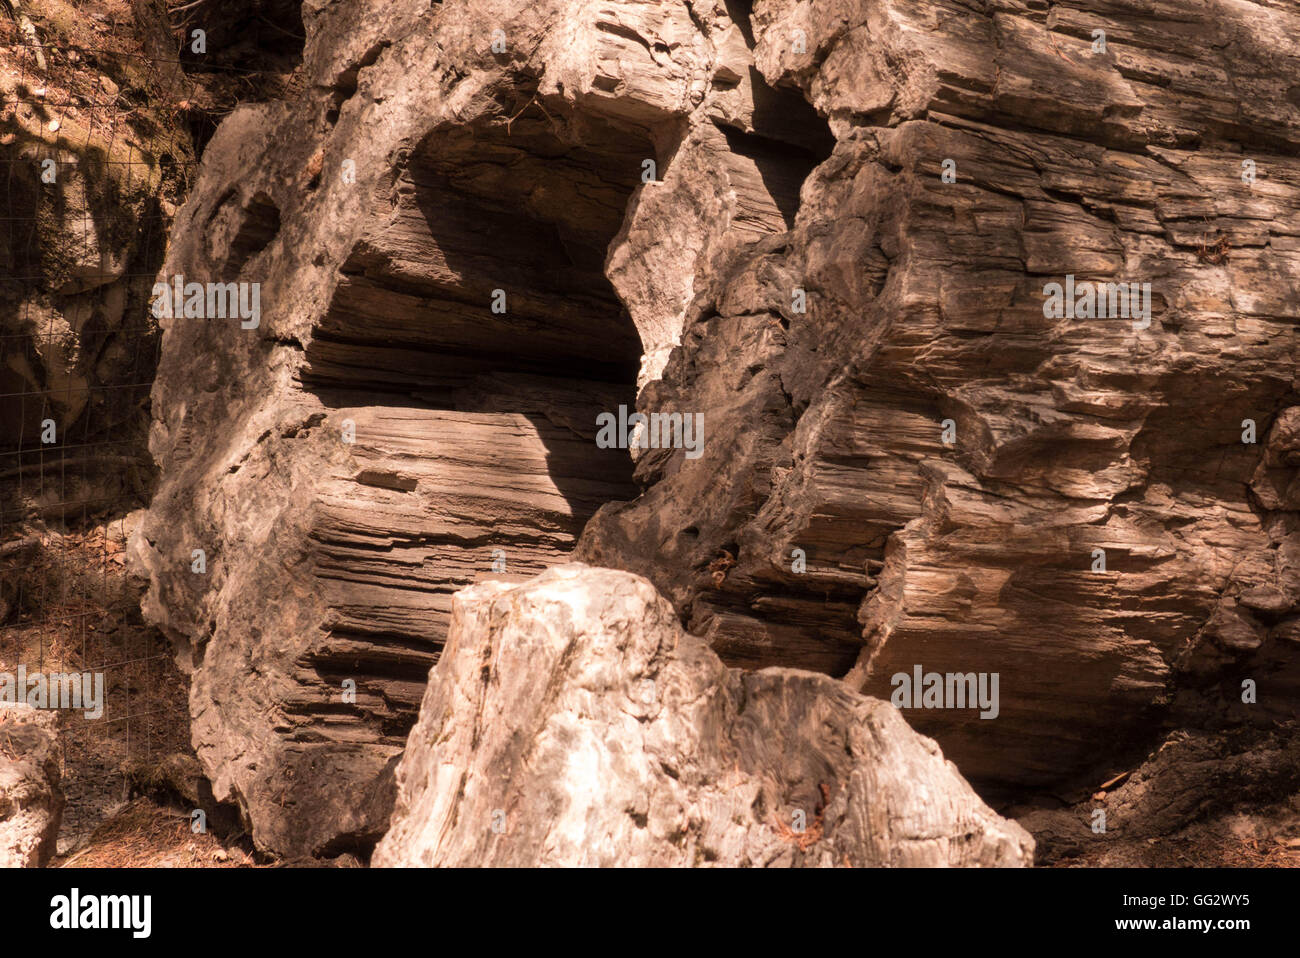 petrified wood trees in Petrified forest Northern California - Stock Image